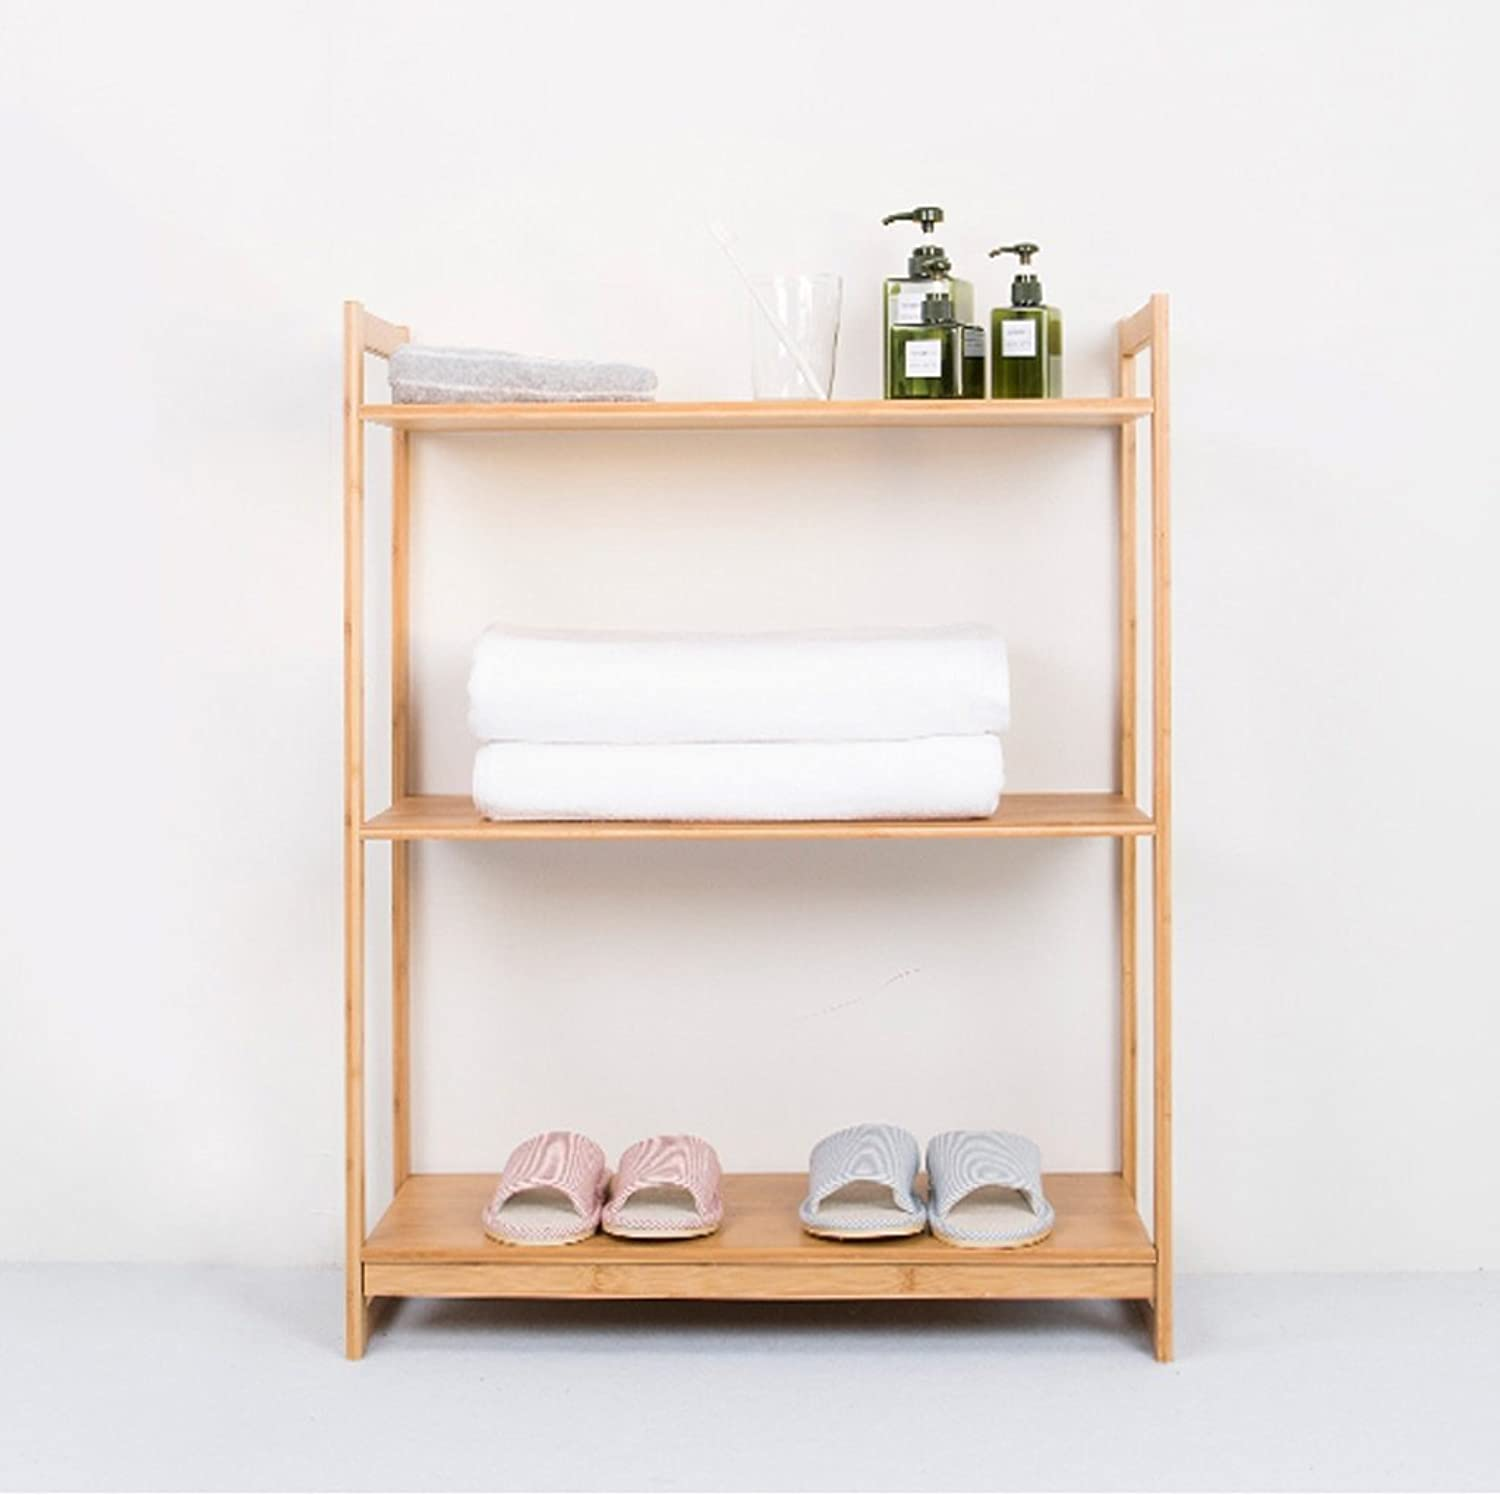 Living Room Bamboo Shelf Creative Kitchen Microwave Oven Frame Landing Bookshelf Storage Rack -by TIANTA (Size   40  30  88 cm)